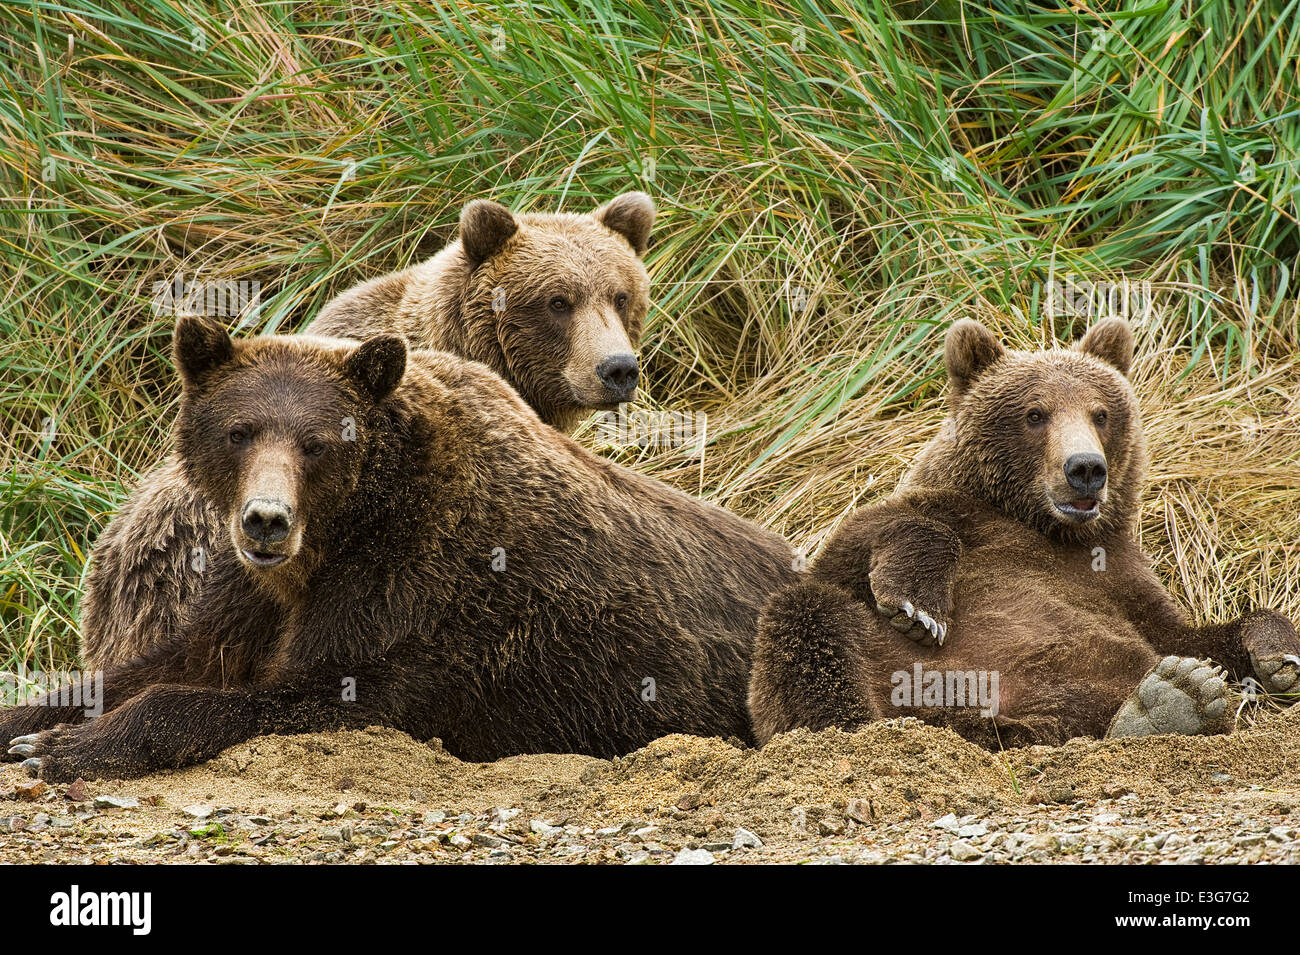 A mother coastal brown bear (grizzly bear) relaxes in a sand pit with two yearling cubs. - Stock Image